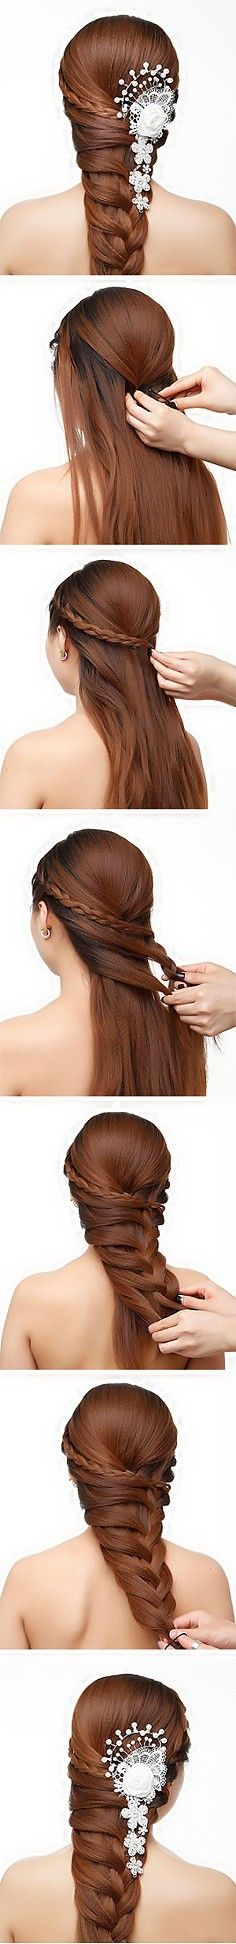 Duitang site - so no words, photos only. I think I could use Gramma's butterfly-combs in this style for a pretty headache-free braid! LOVE it!